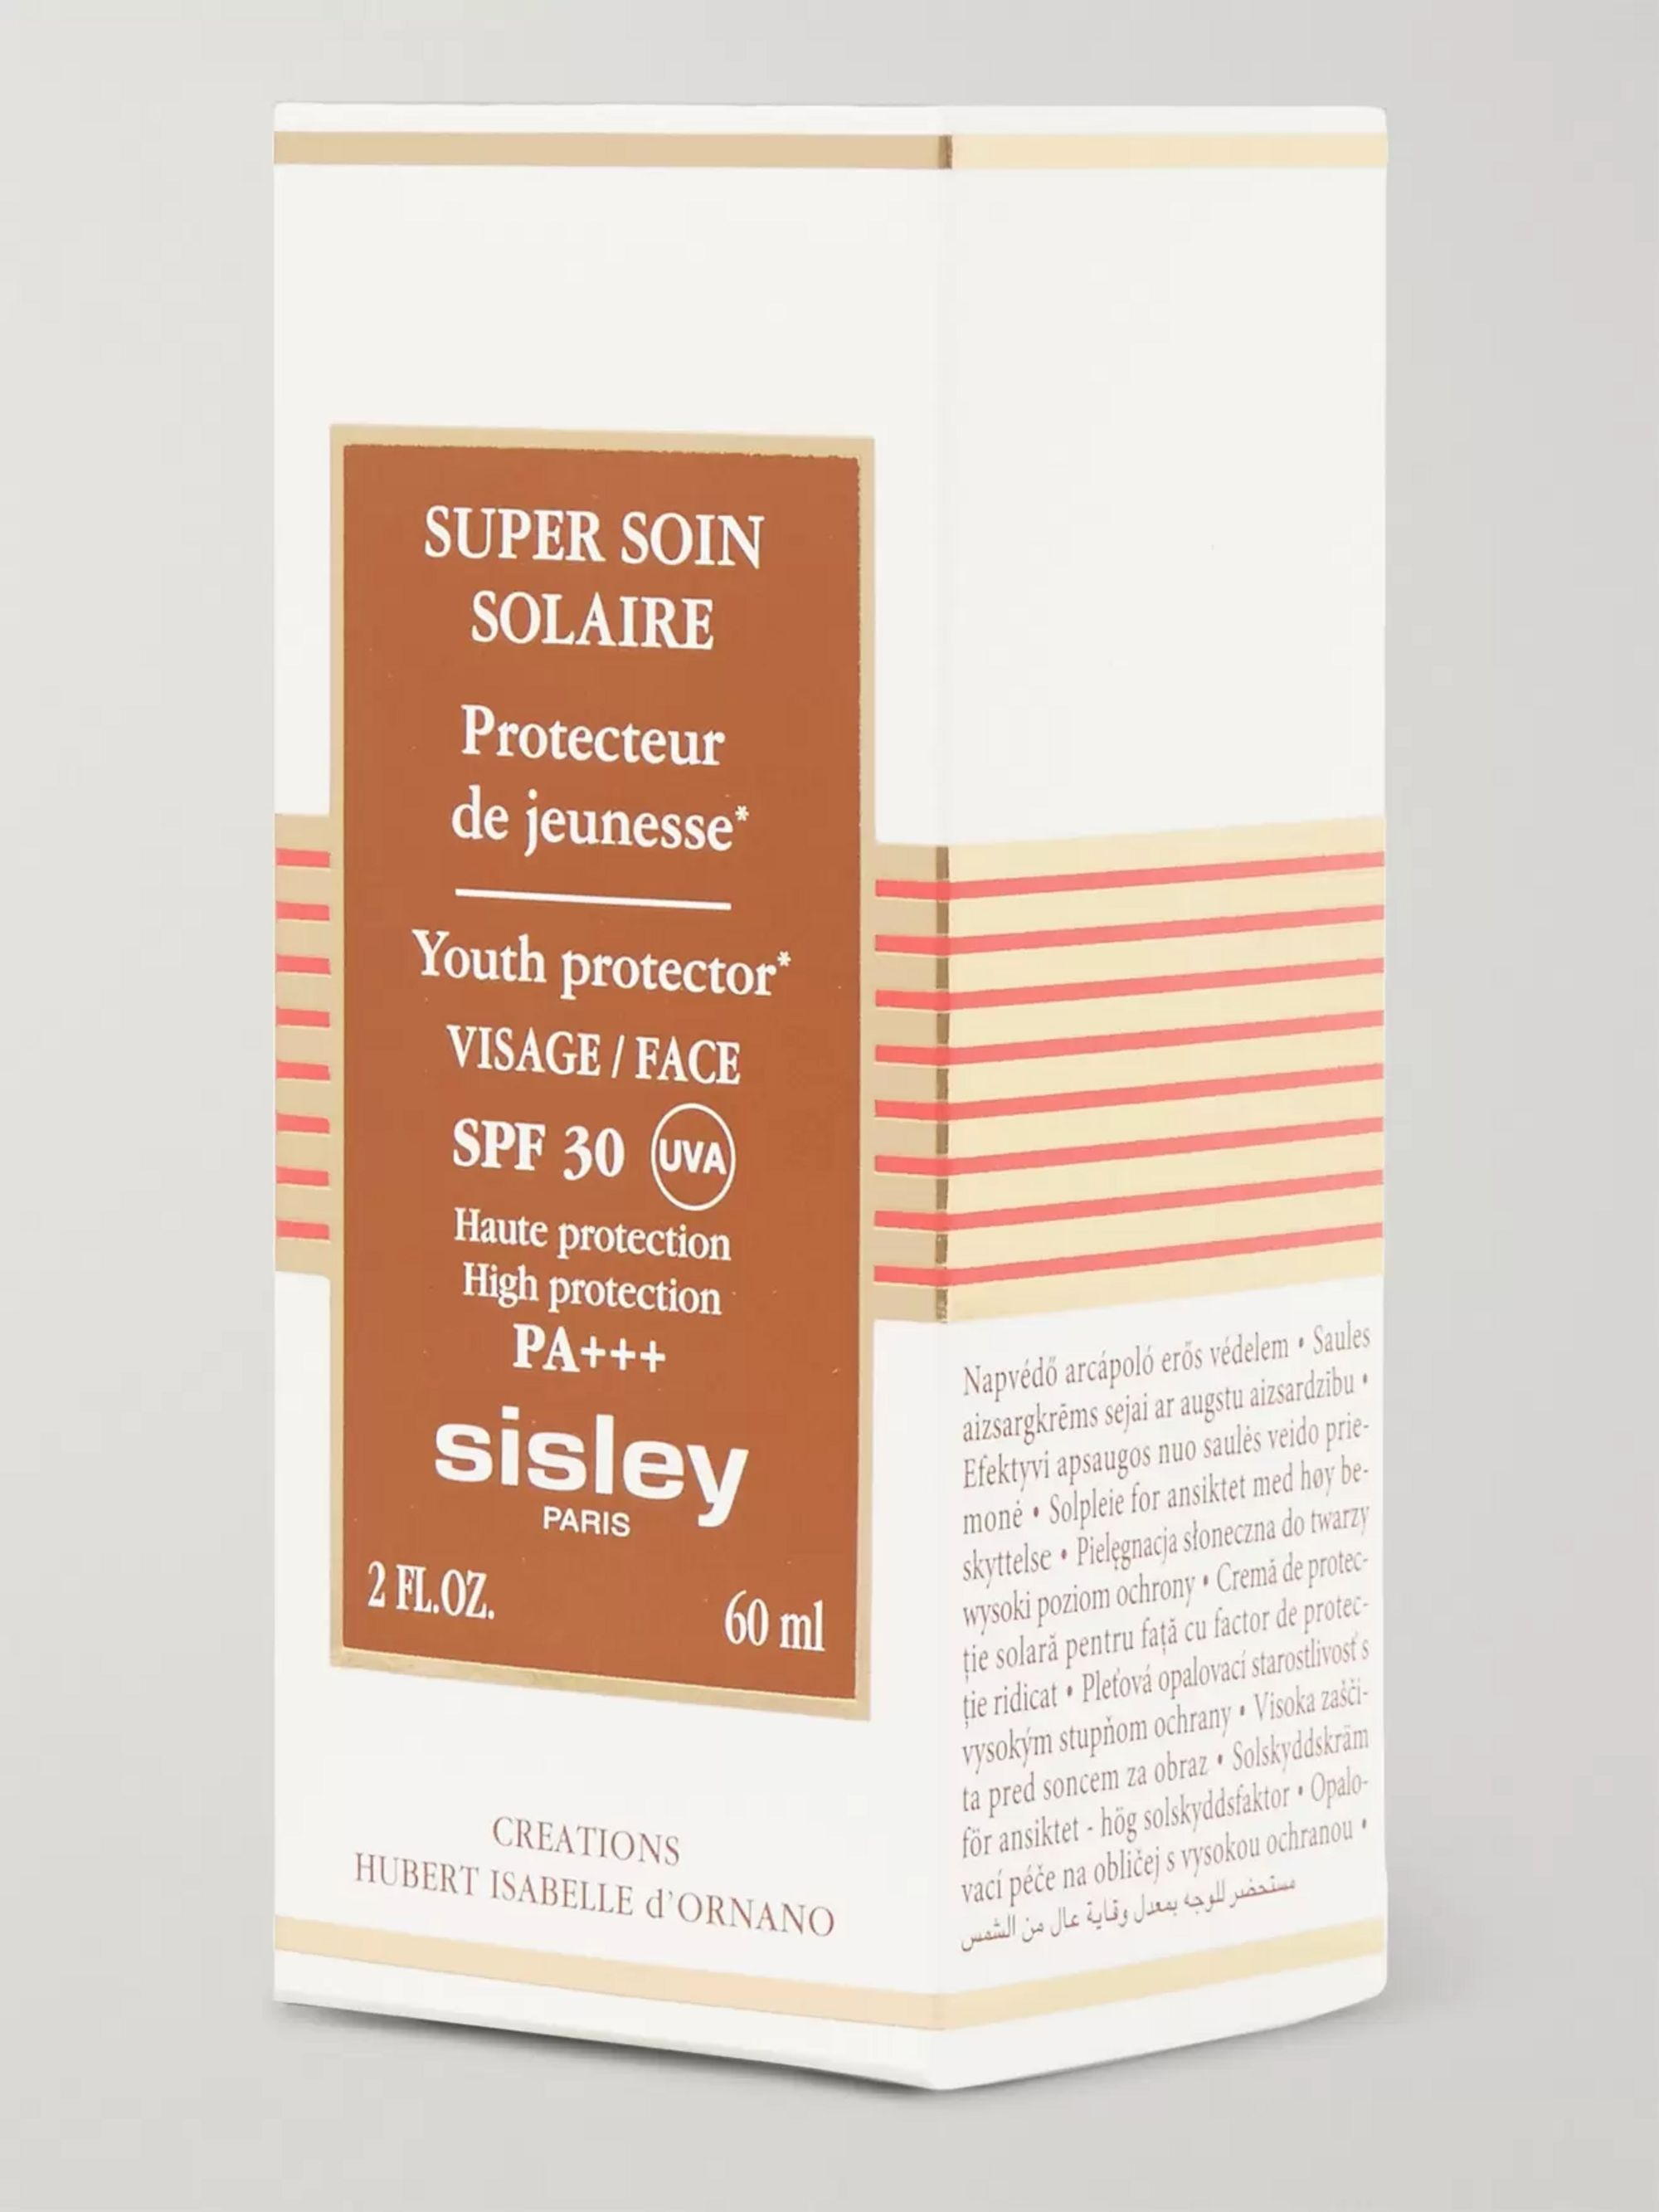 Sisley Super Soin Solaire Facial Youth Protector SPF30, 60ml